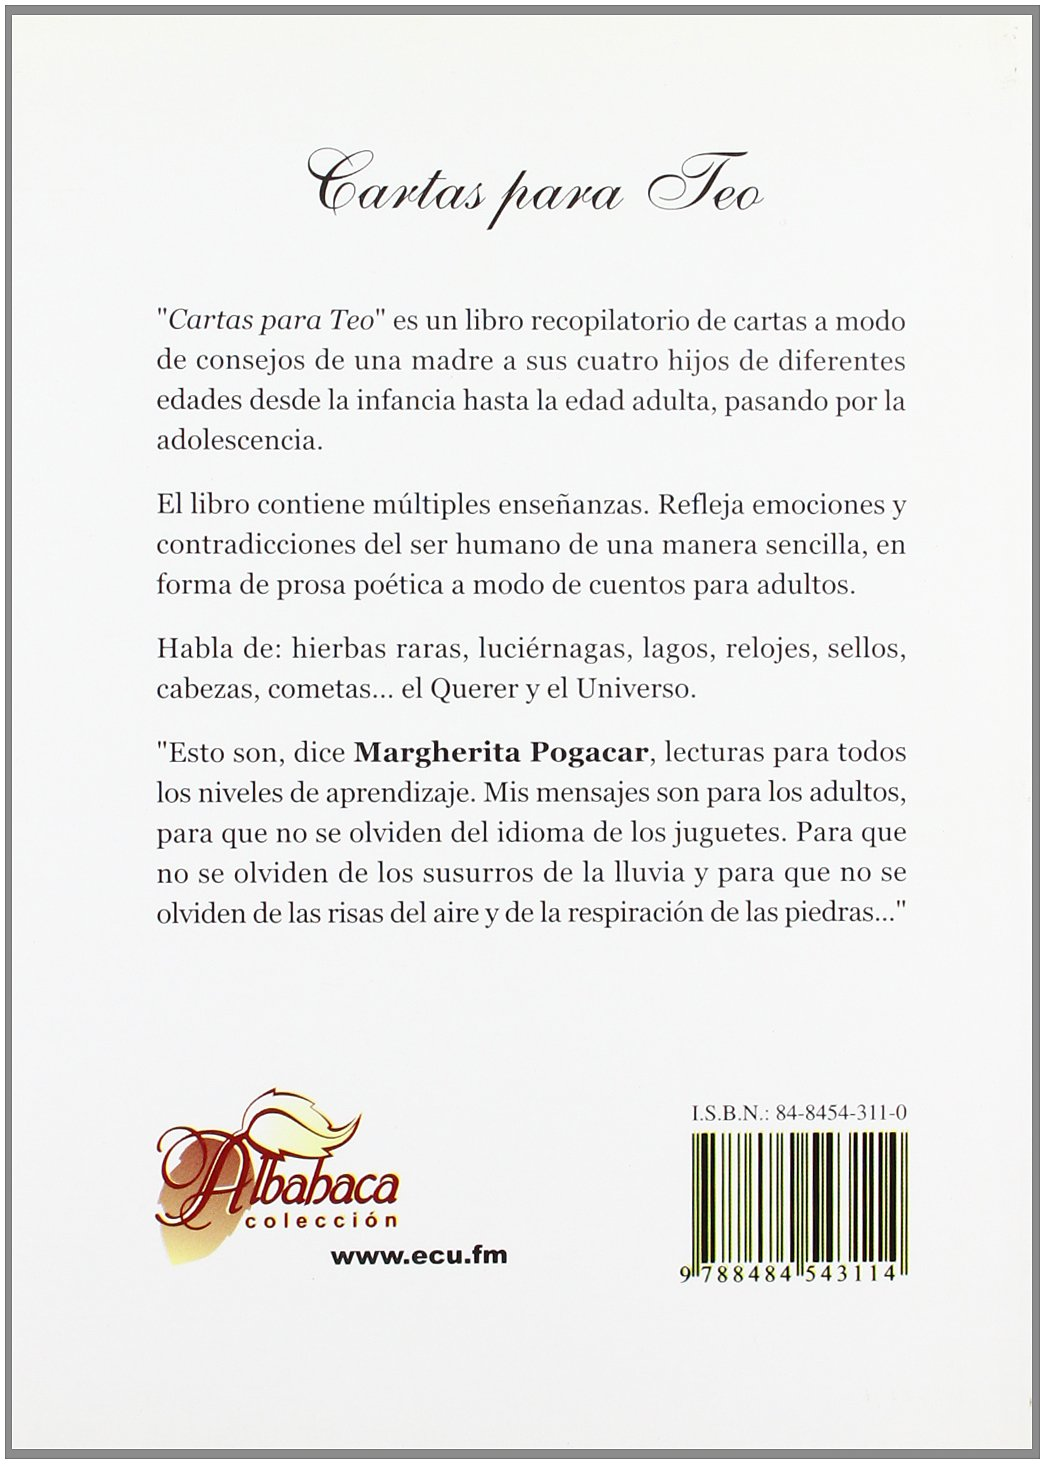 Cartas para Teo: Marguerita Pogacar Baldassini: 9788484543114: Amazon.com: Books